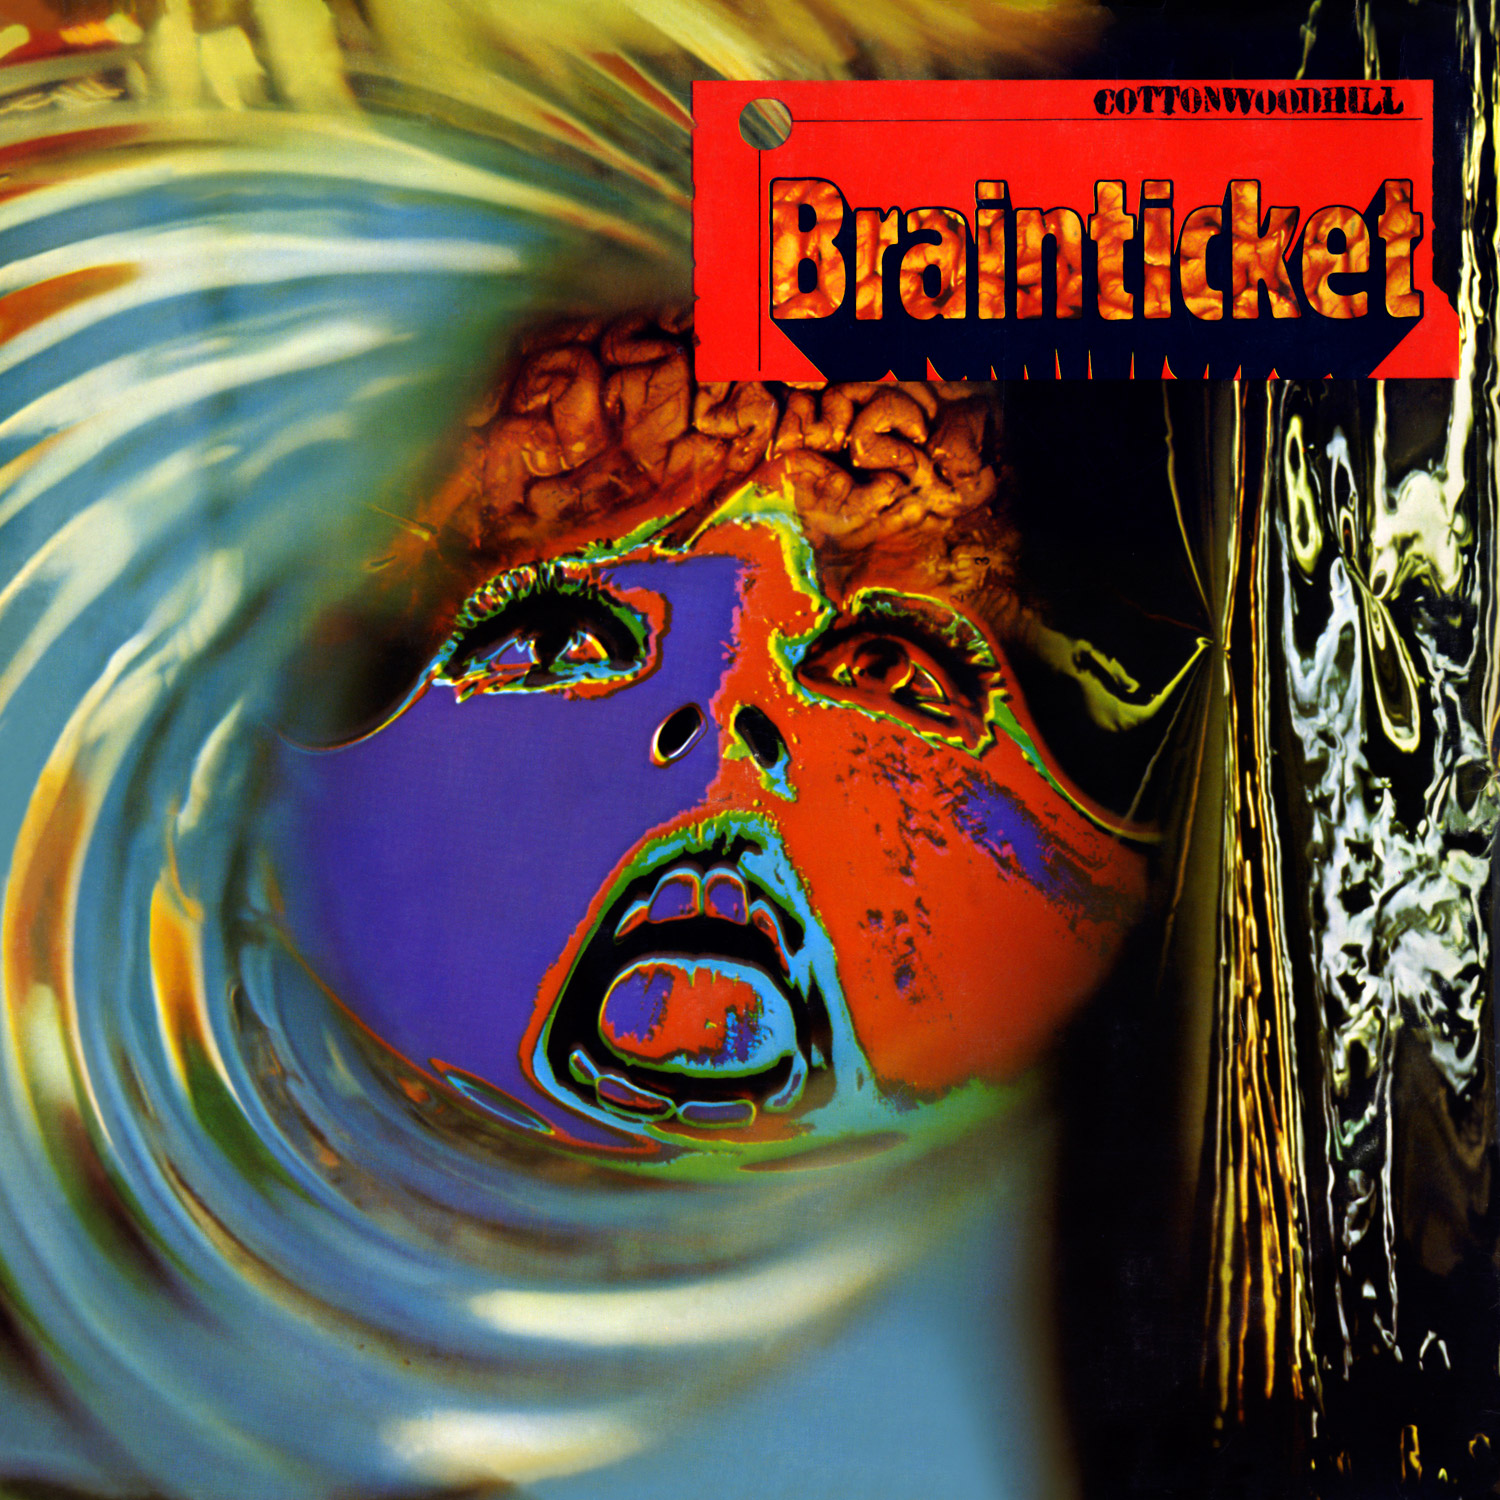 Brainticket - Cottonwoodhill